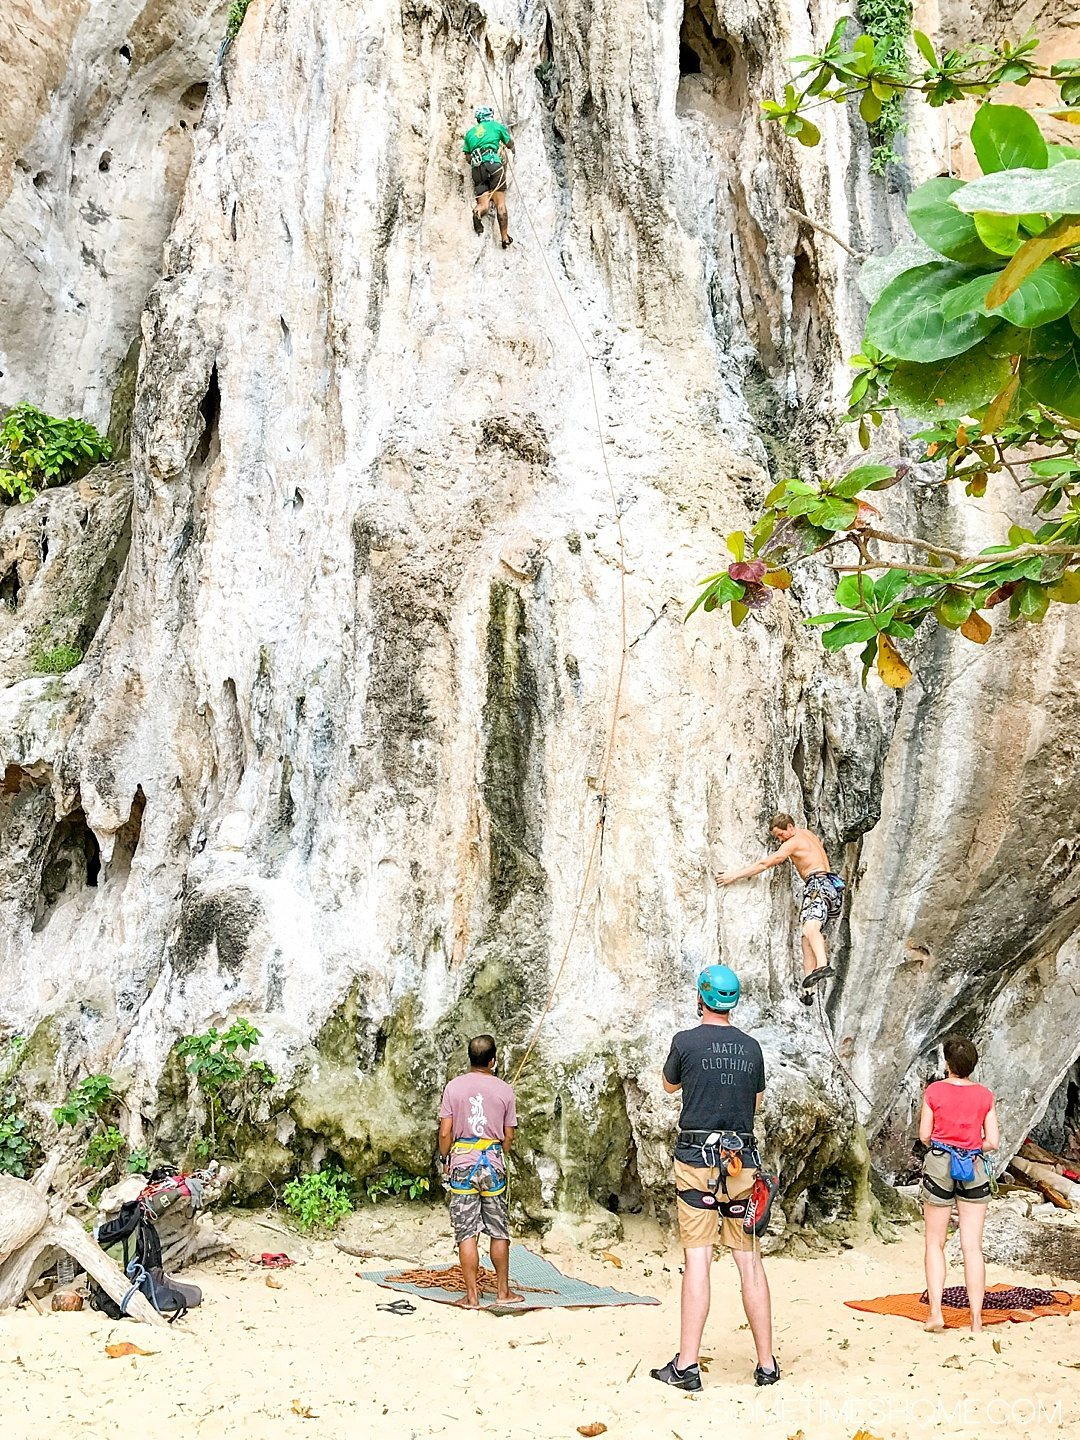 The Best Excursion We Did In Thailand Was A Day Rock Climbing Et With An Amazing Private Trip To Railay Beach